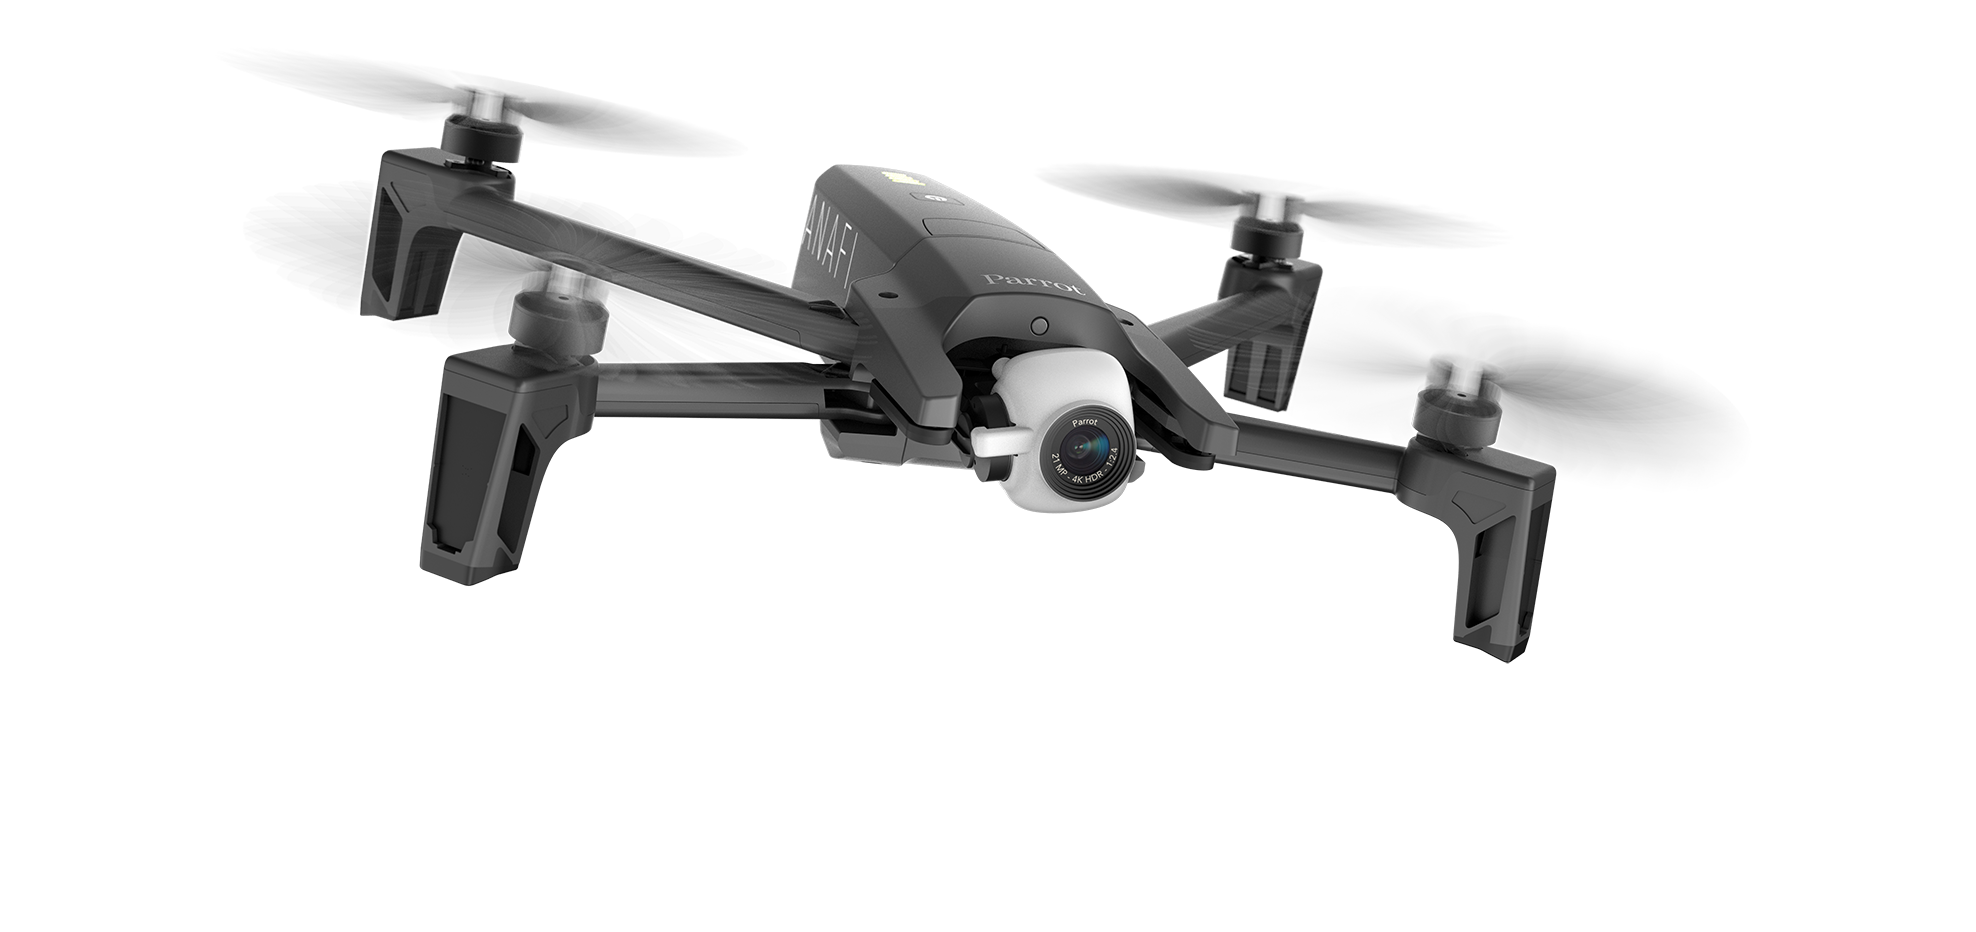 Parrot Anafi Drone Field Test Review